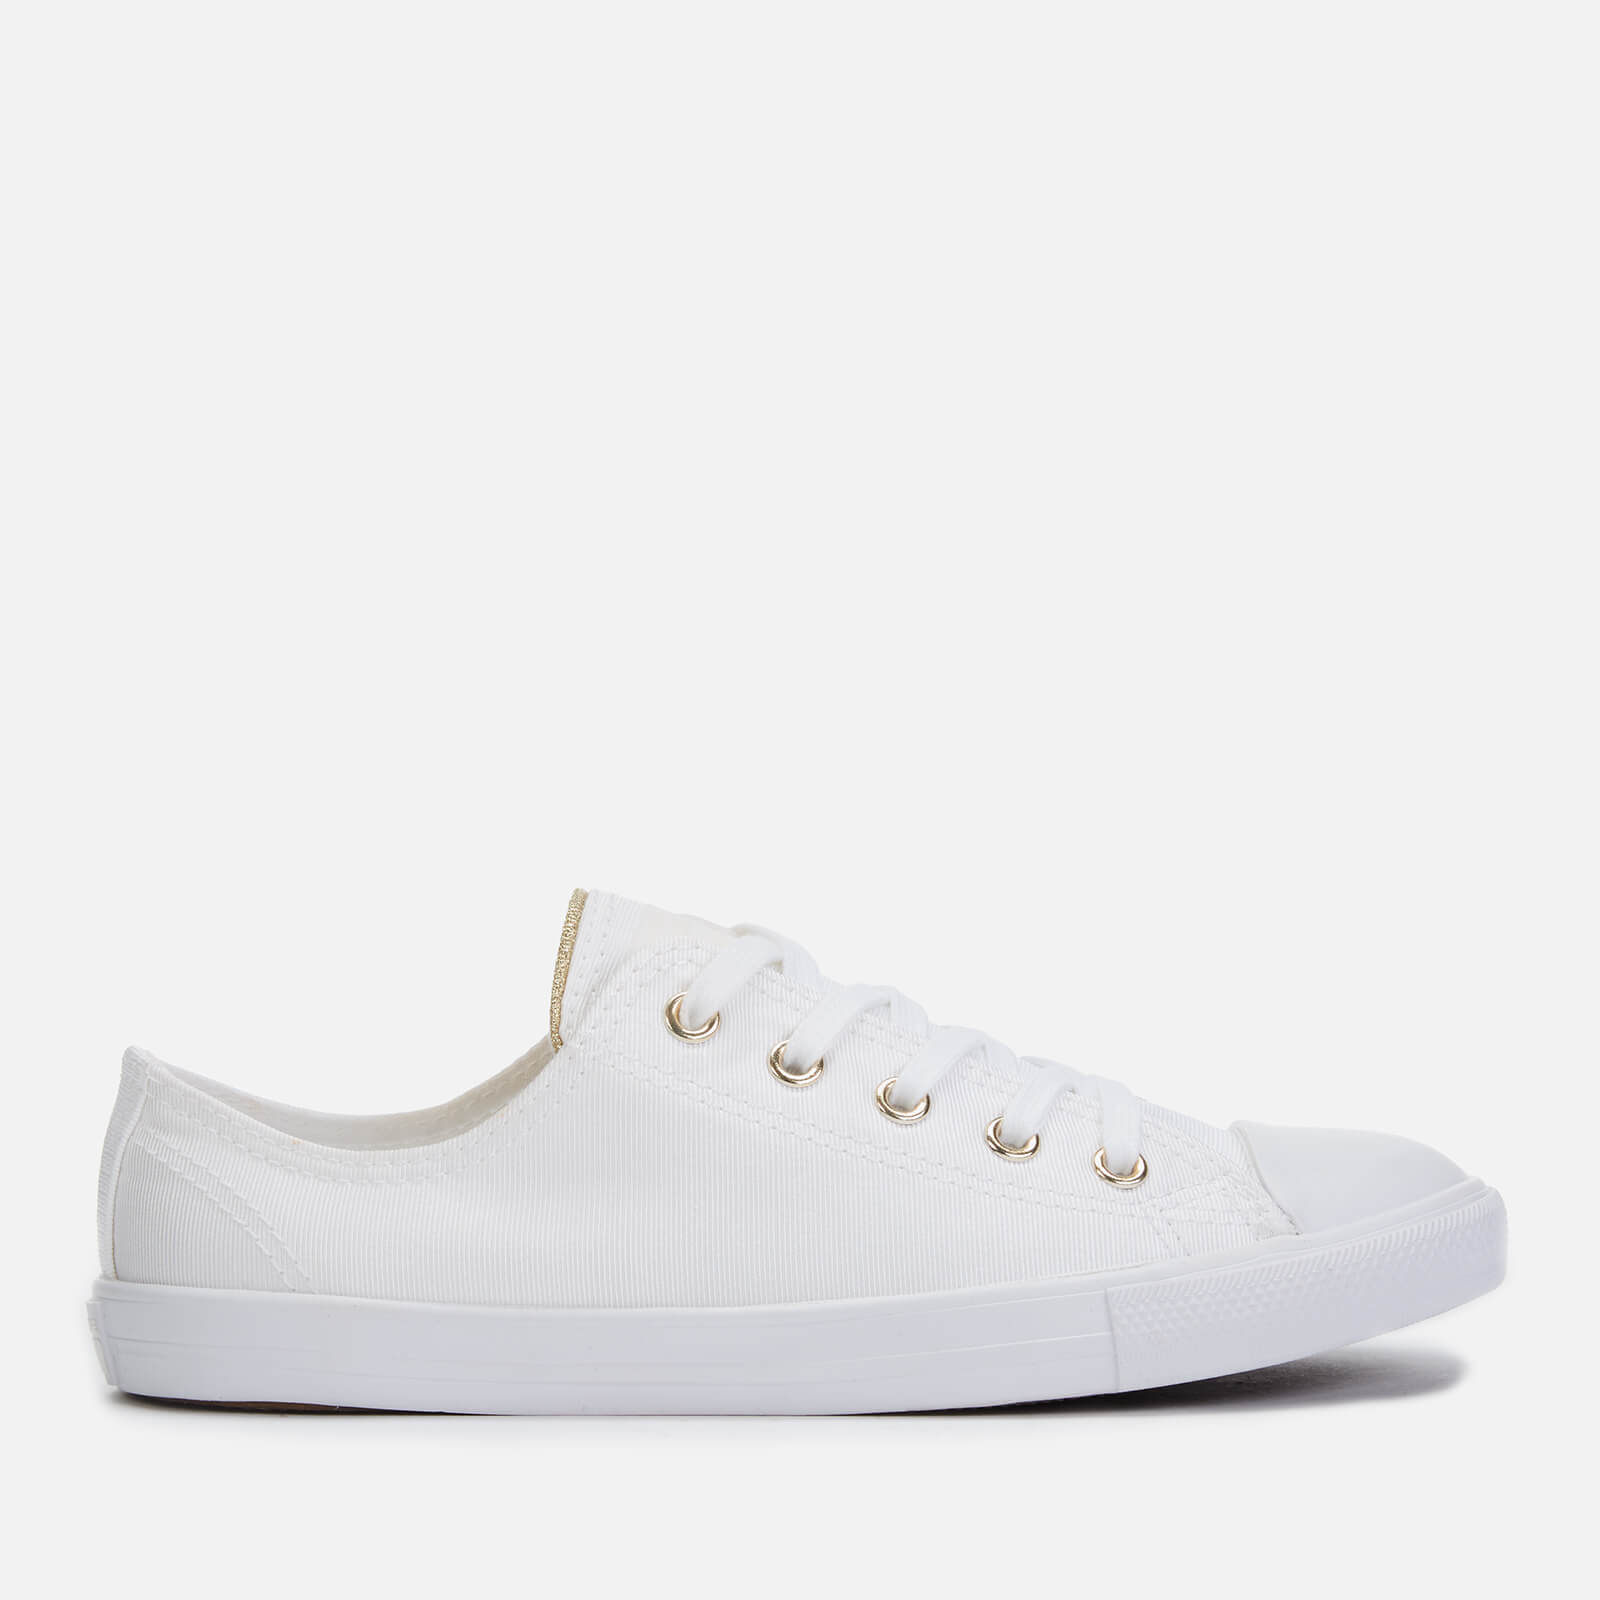 Converse Women's Chuck Taylor All Star Dainty Ox Trainers WhiteEgretLight Gold